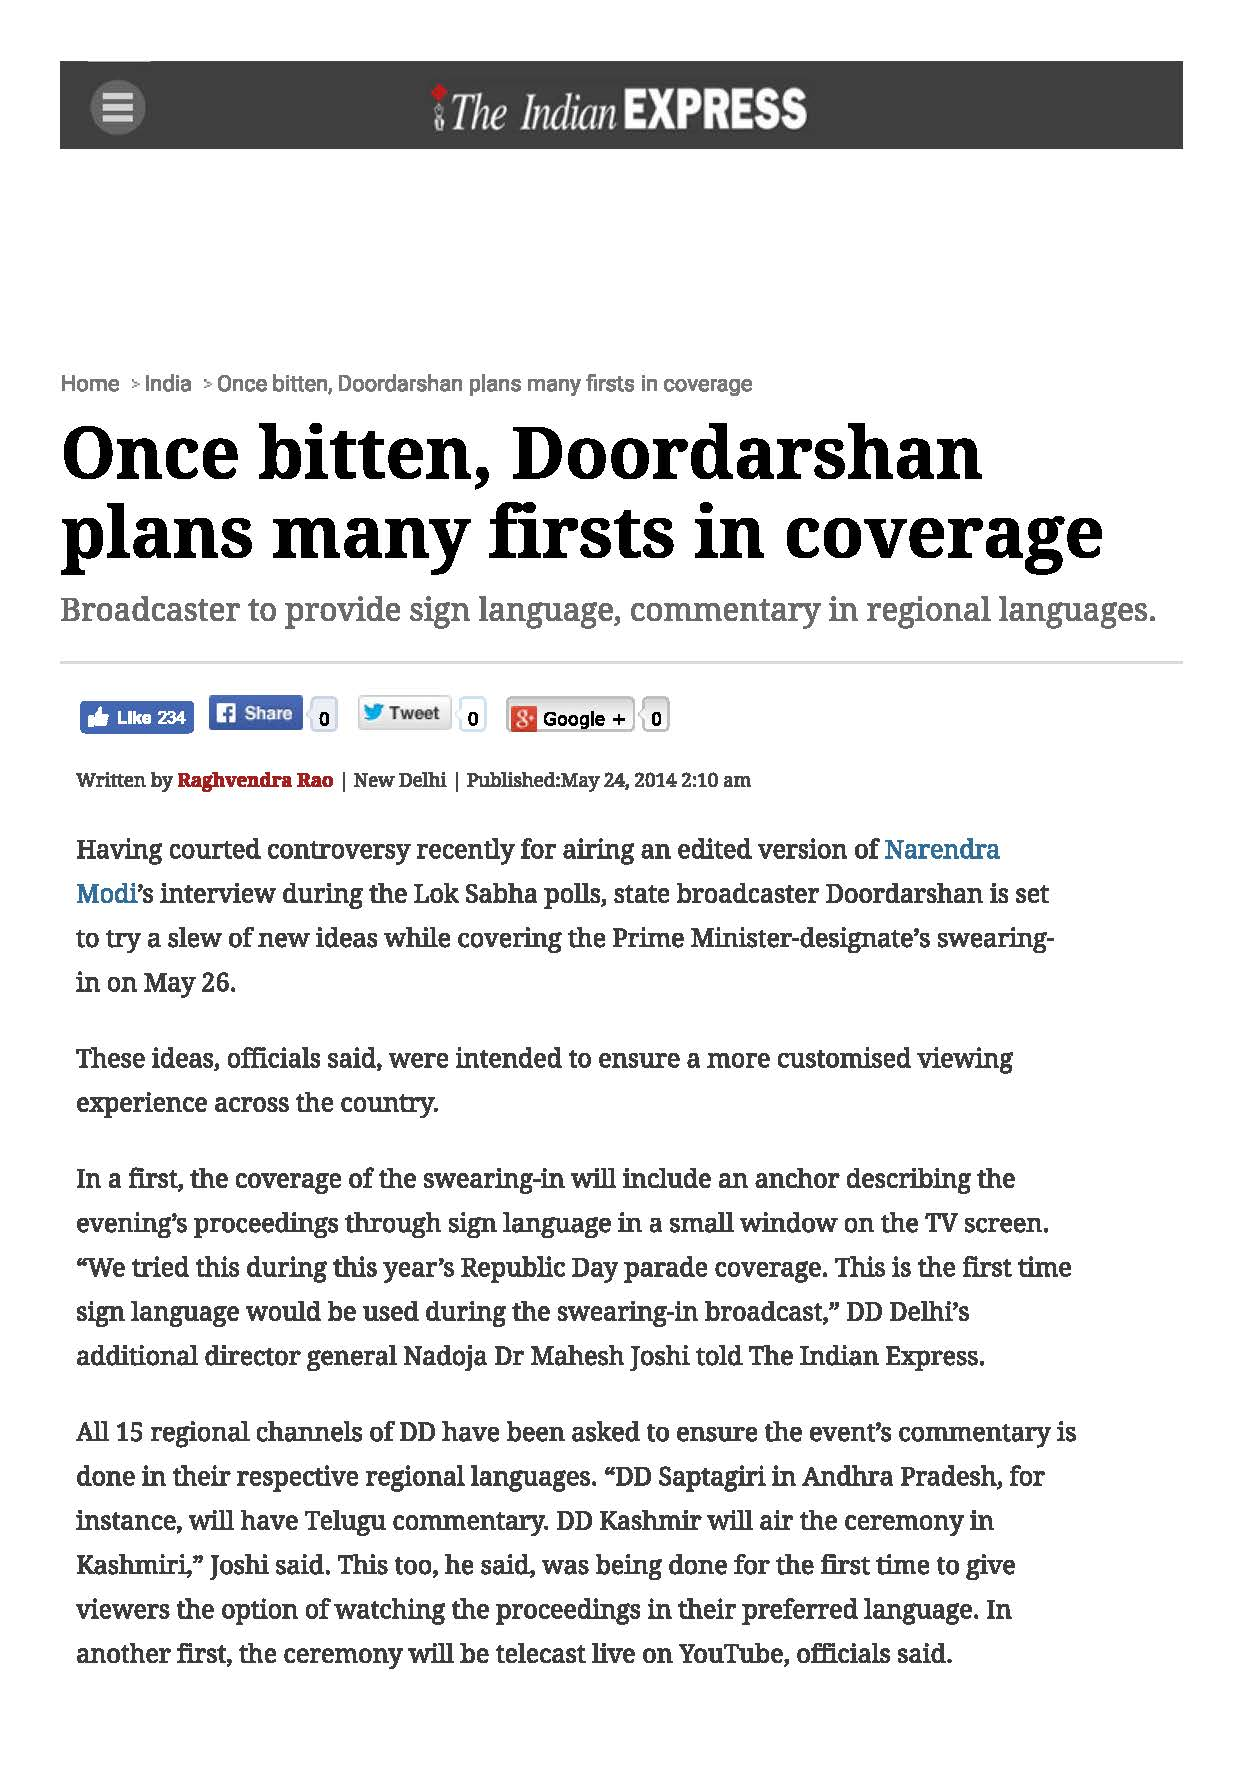 Once bitten, Doordarshan plans many firsts in coverage